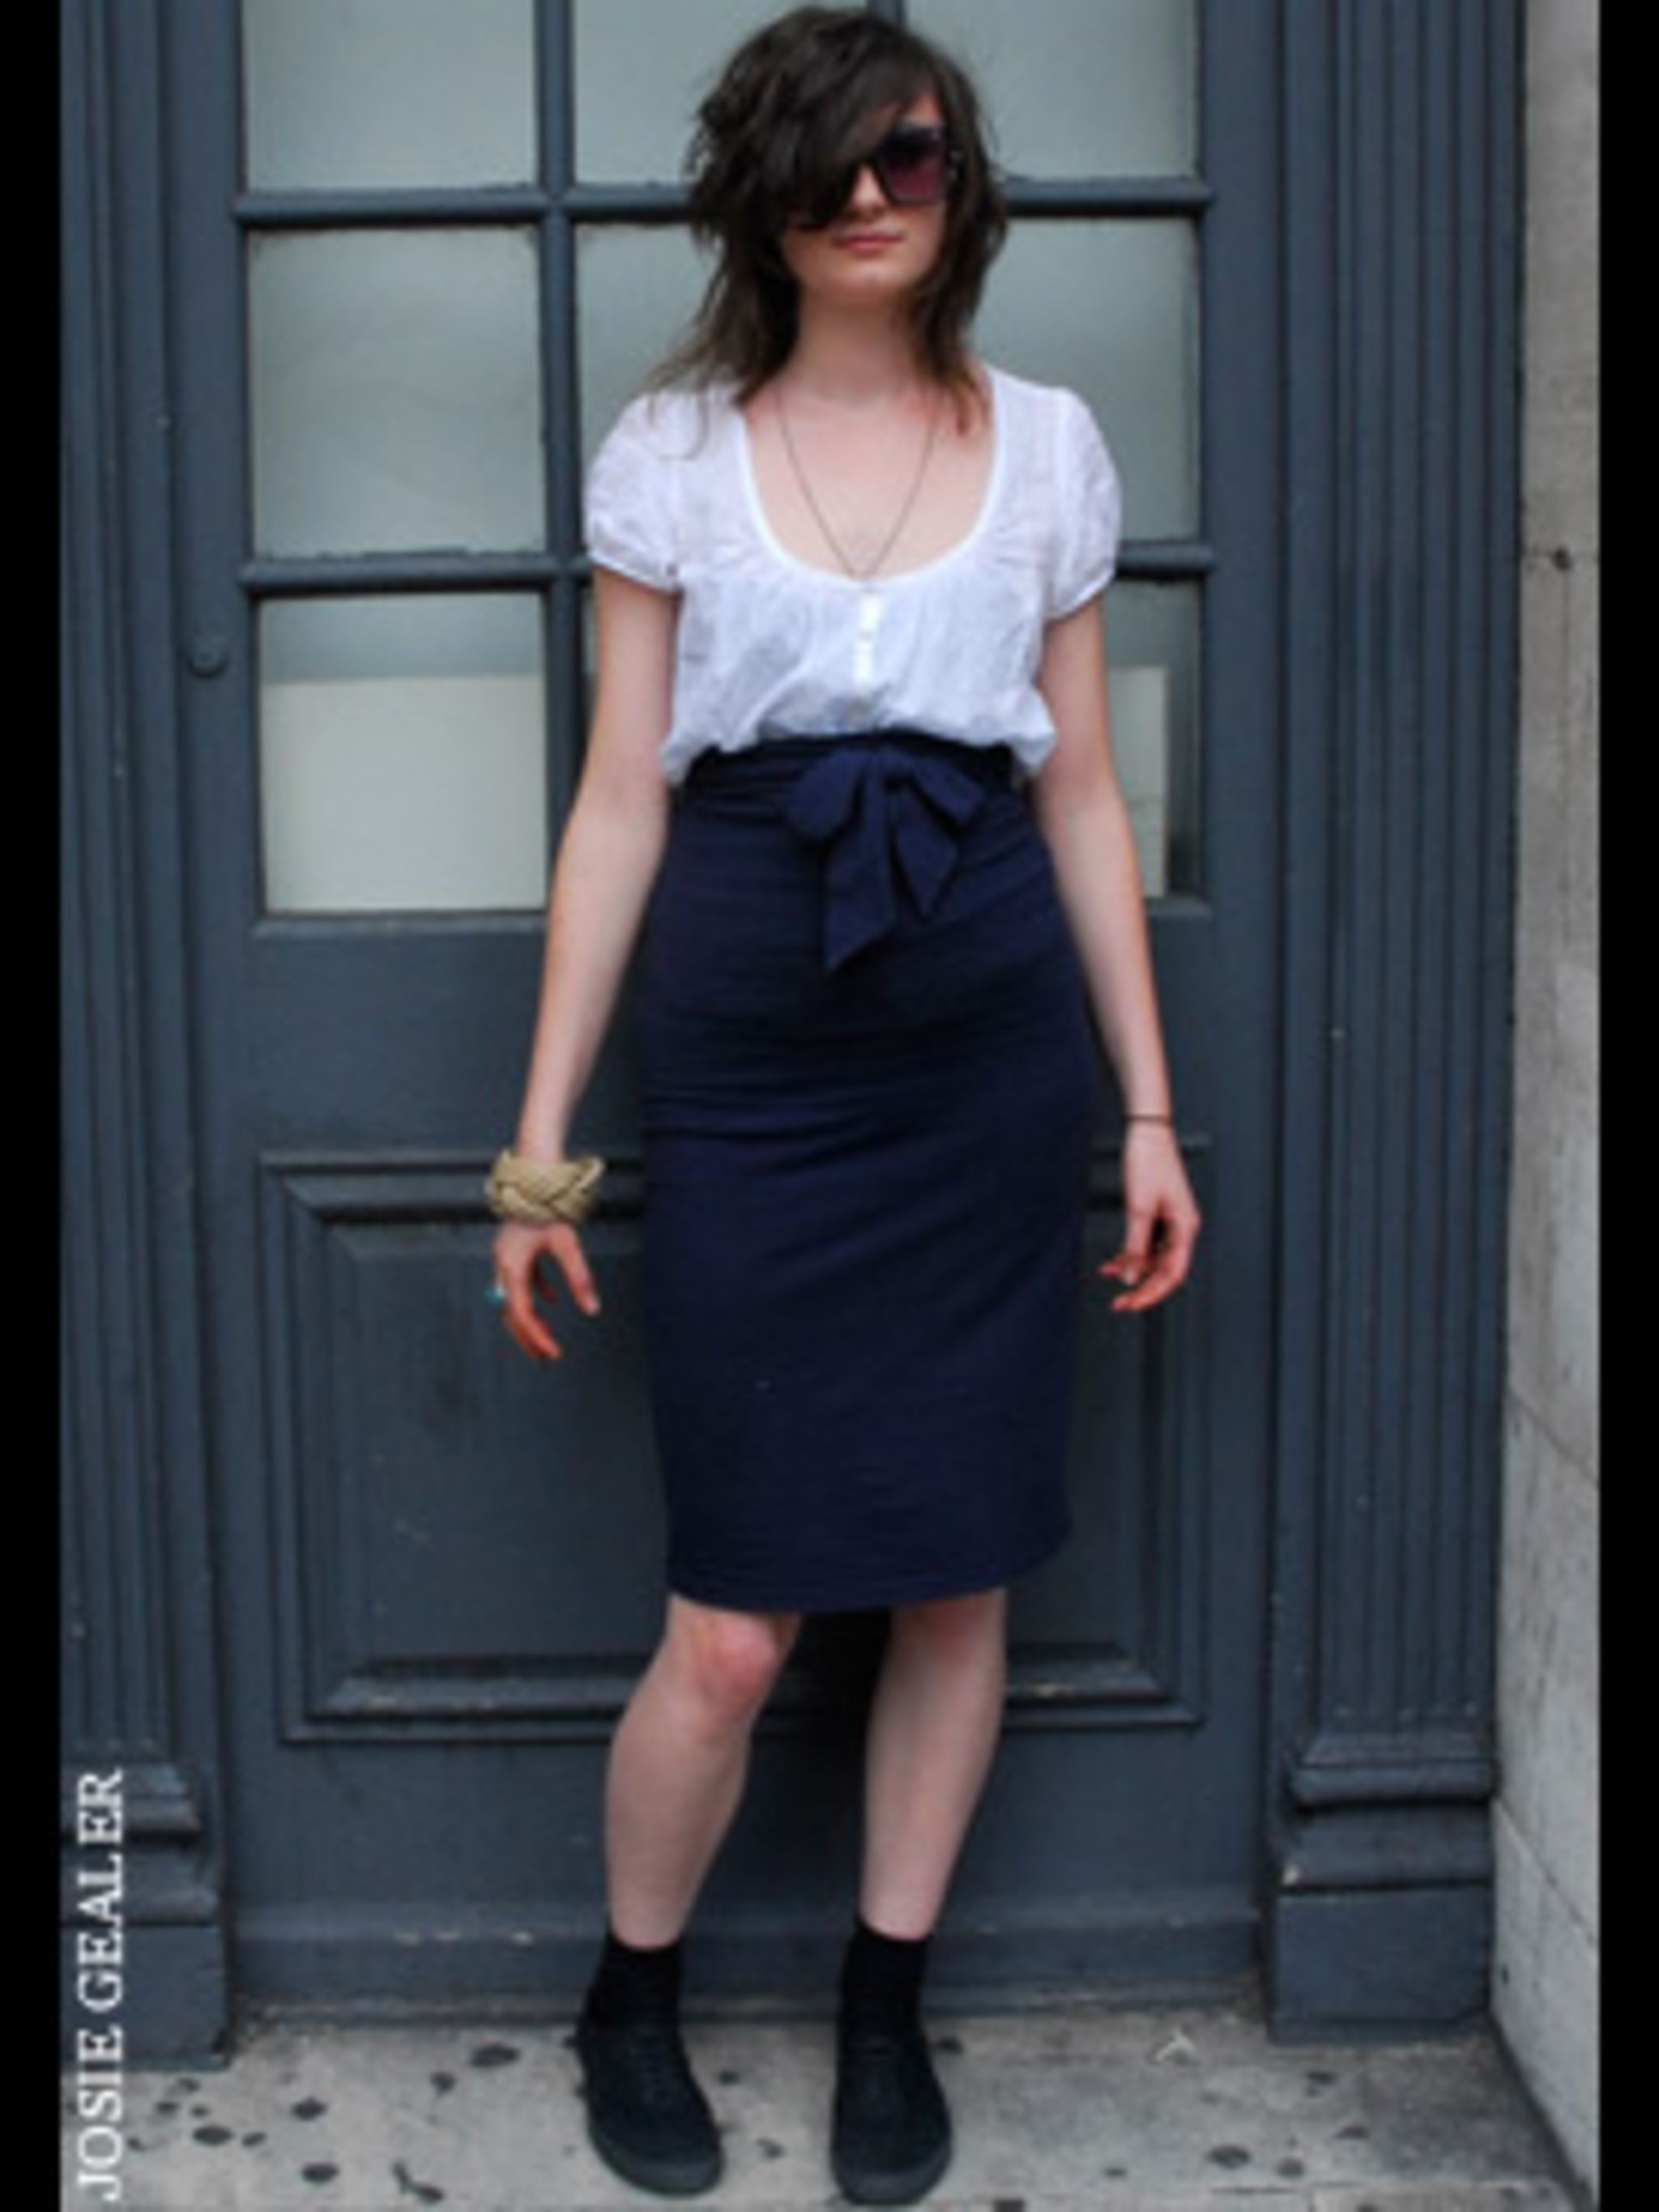 <p>Take a style tip from Elise who knows this simple white blouse is a great basic to team with a high waisted skirt. It lets the shape of the skirt take centre stage in this outfit. </p>